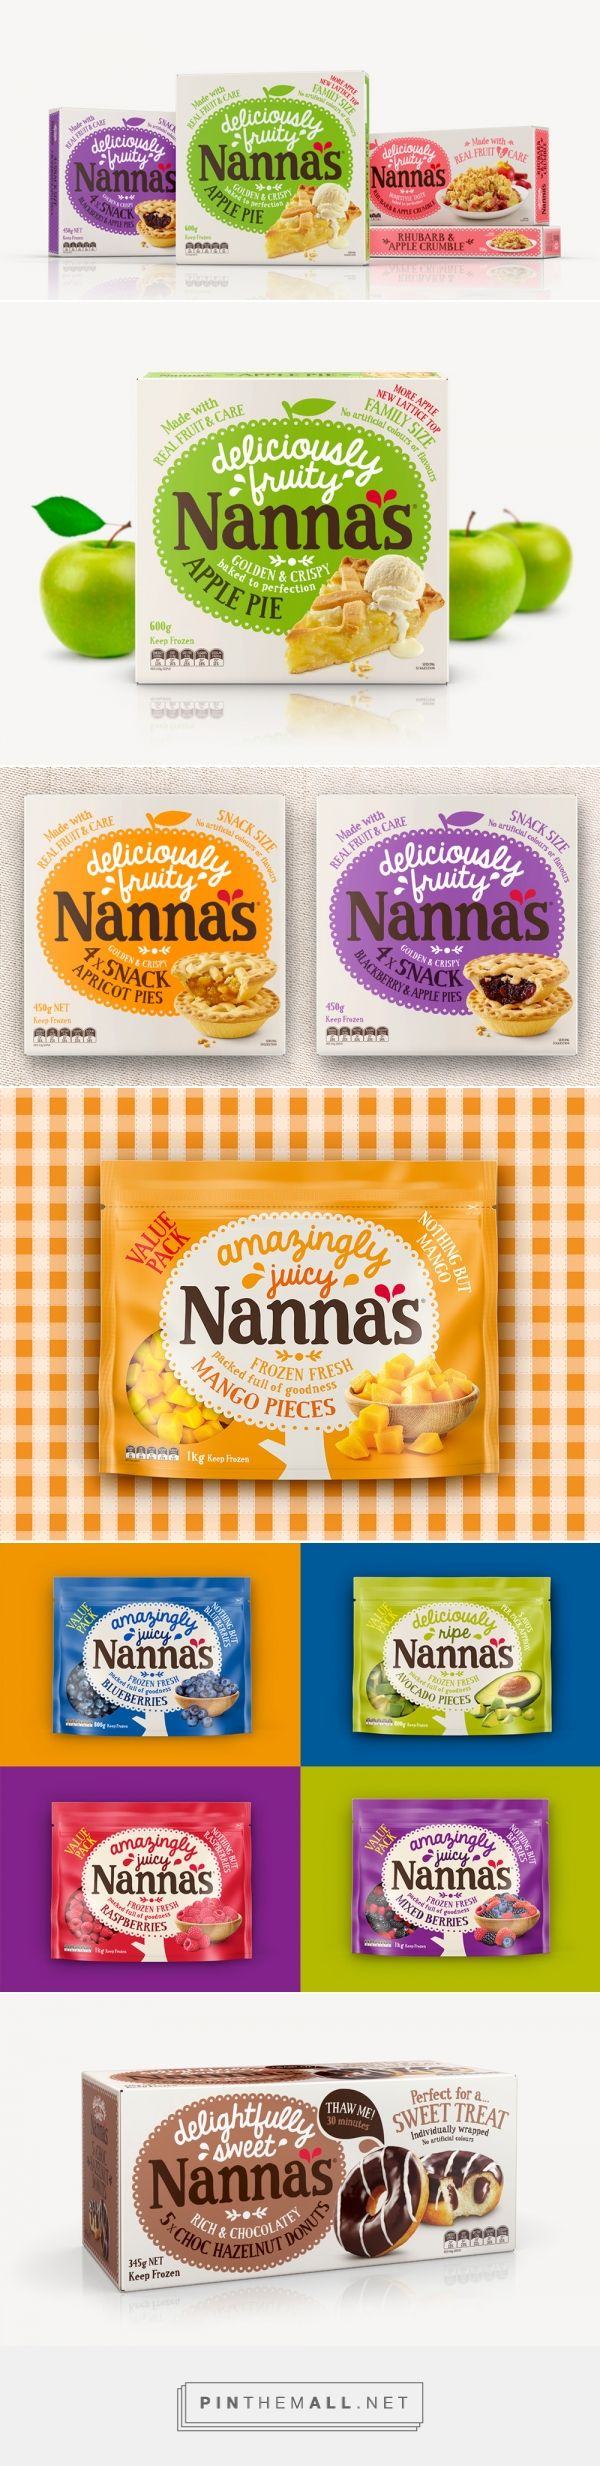 Nanna's — The Dieline - Branding & Packaging - created via http://pinthemall.net